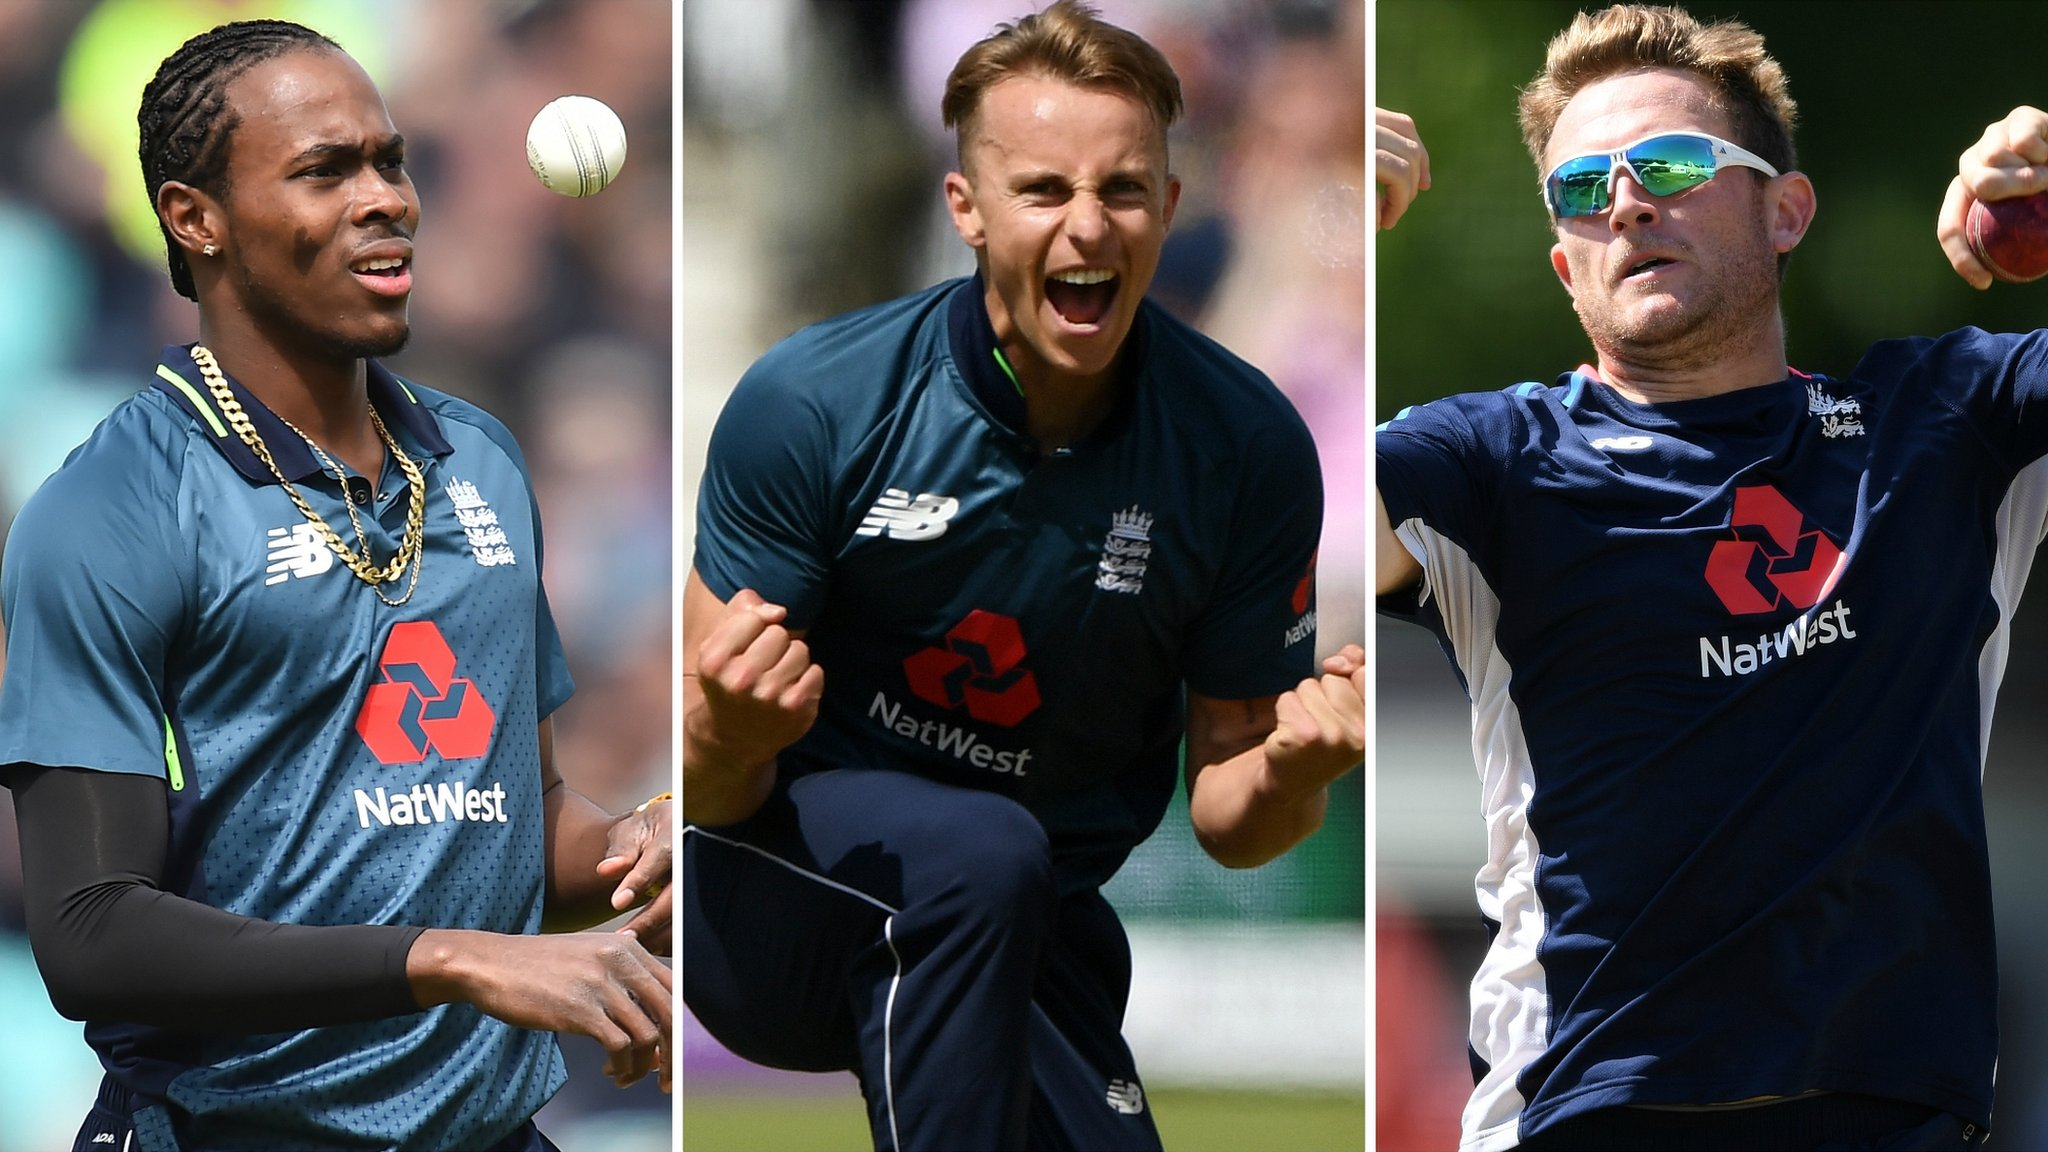 World Cup: England name Jofra Archer, Tom Curran & Liam Dawson in squad